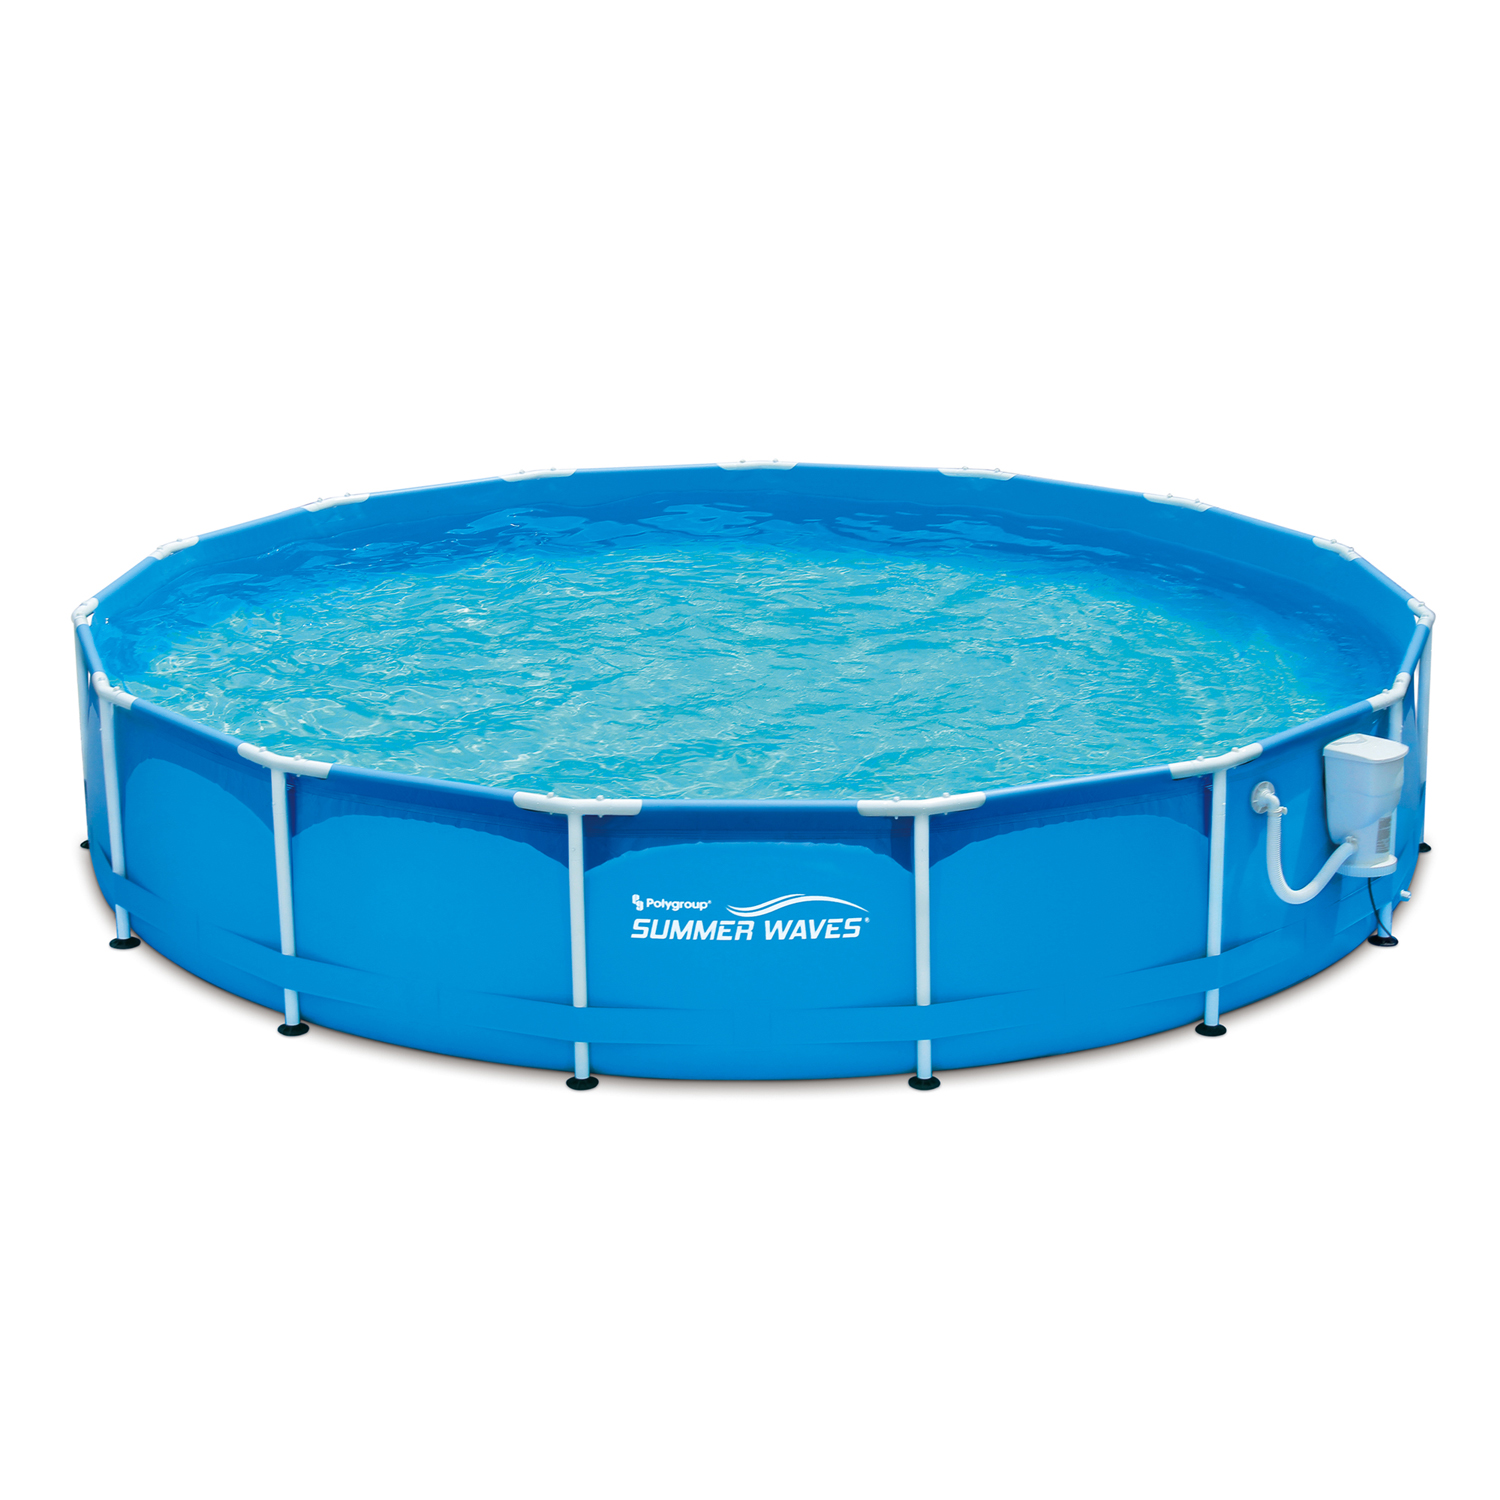 "Summer Waves 15' x 33"" Metal Frame Above Ground Swimming Pool with Filter Pump System"